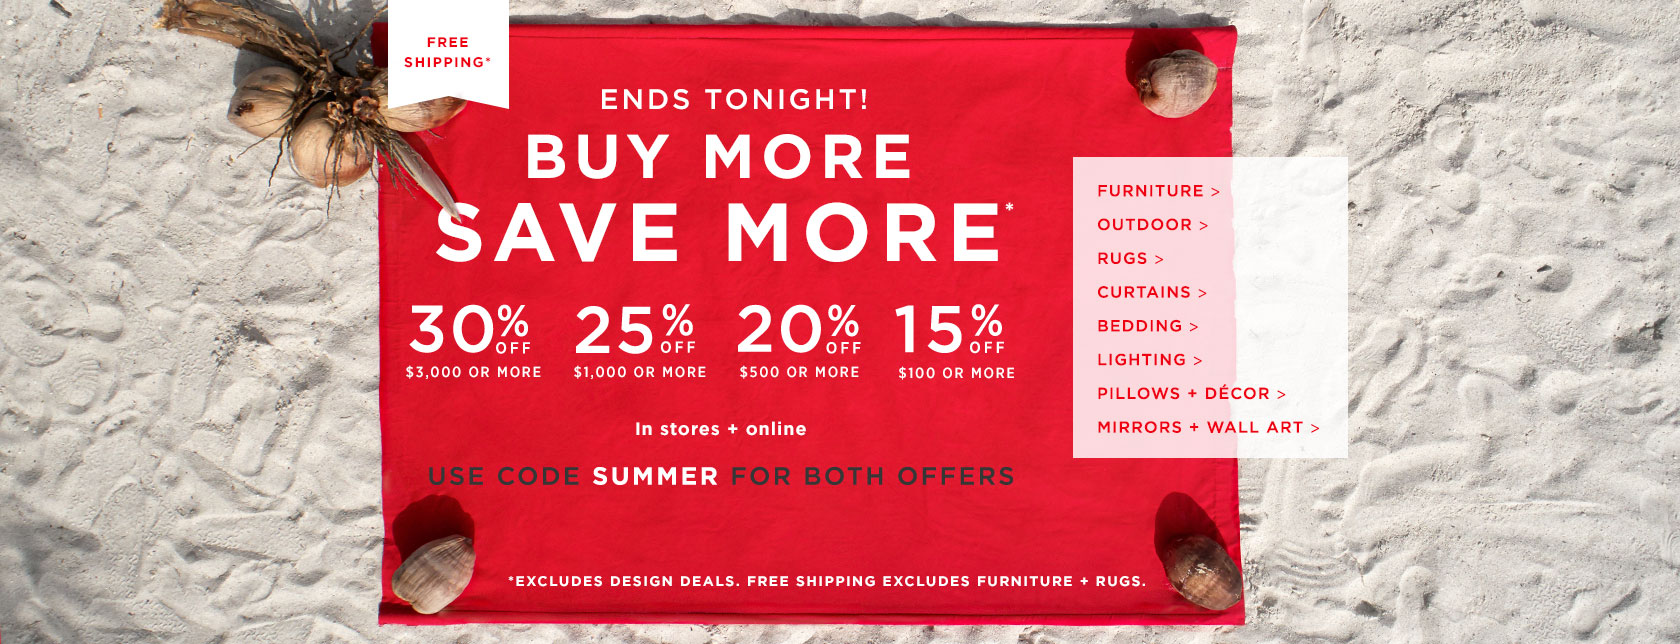 Ends Tonight! Buy More Save More! Up To 30% Off + Free Shipping. Use Code SUMMER for both offers